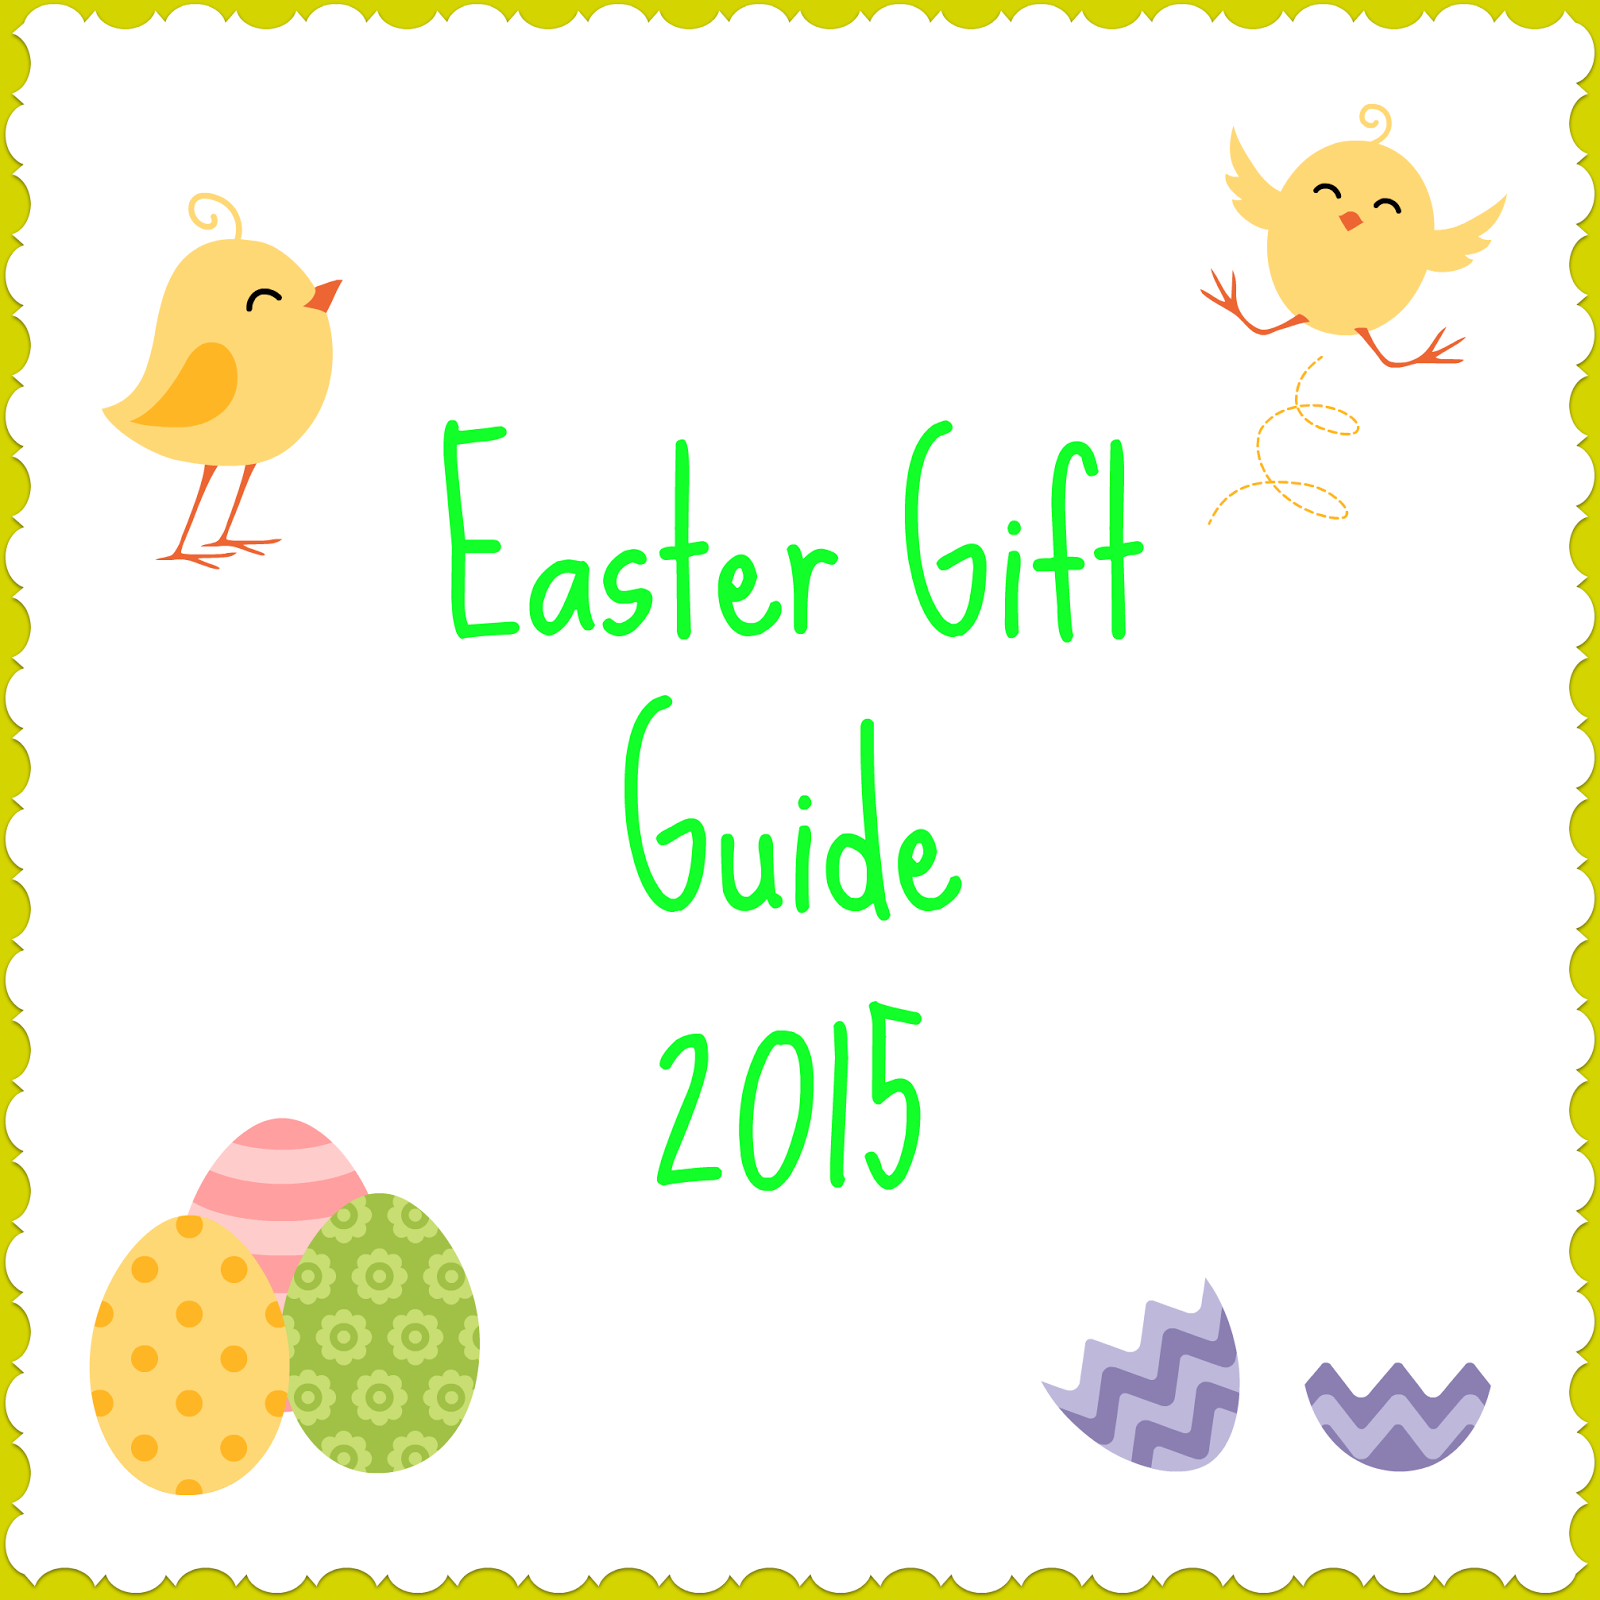 Easter Gift Guide 2015 - Easter Egg Alternatives